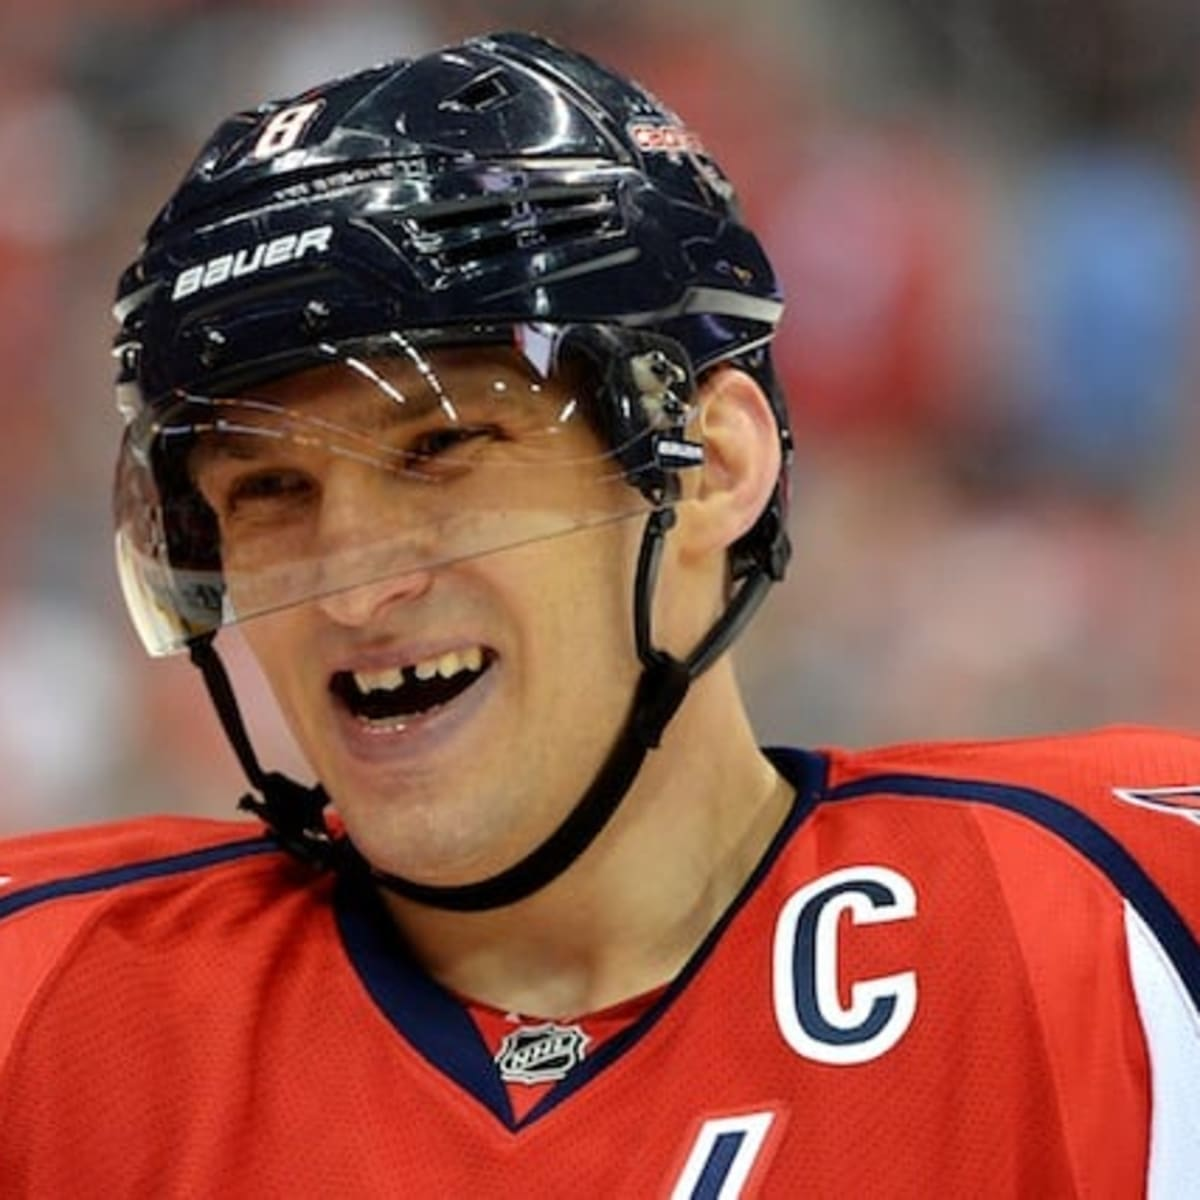 Alex Ovechkin Makes 10 Year Old Fan S Wish Come True On Dream Date The Hockey News On Sports Illustrated